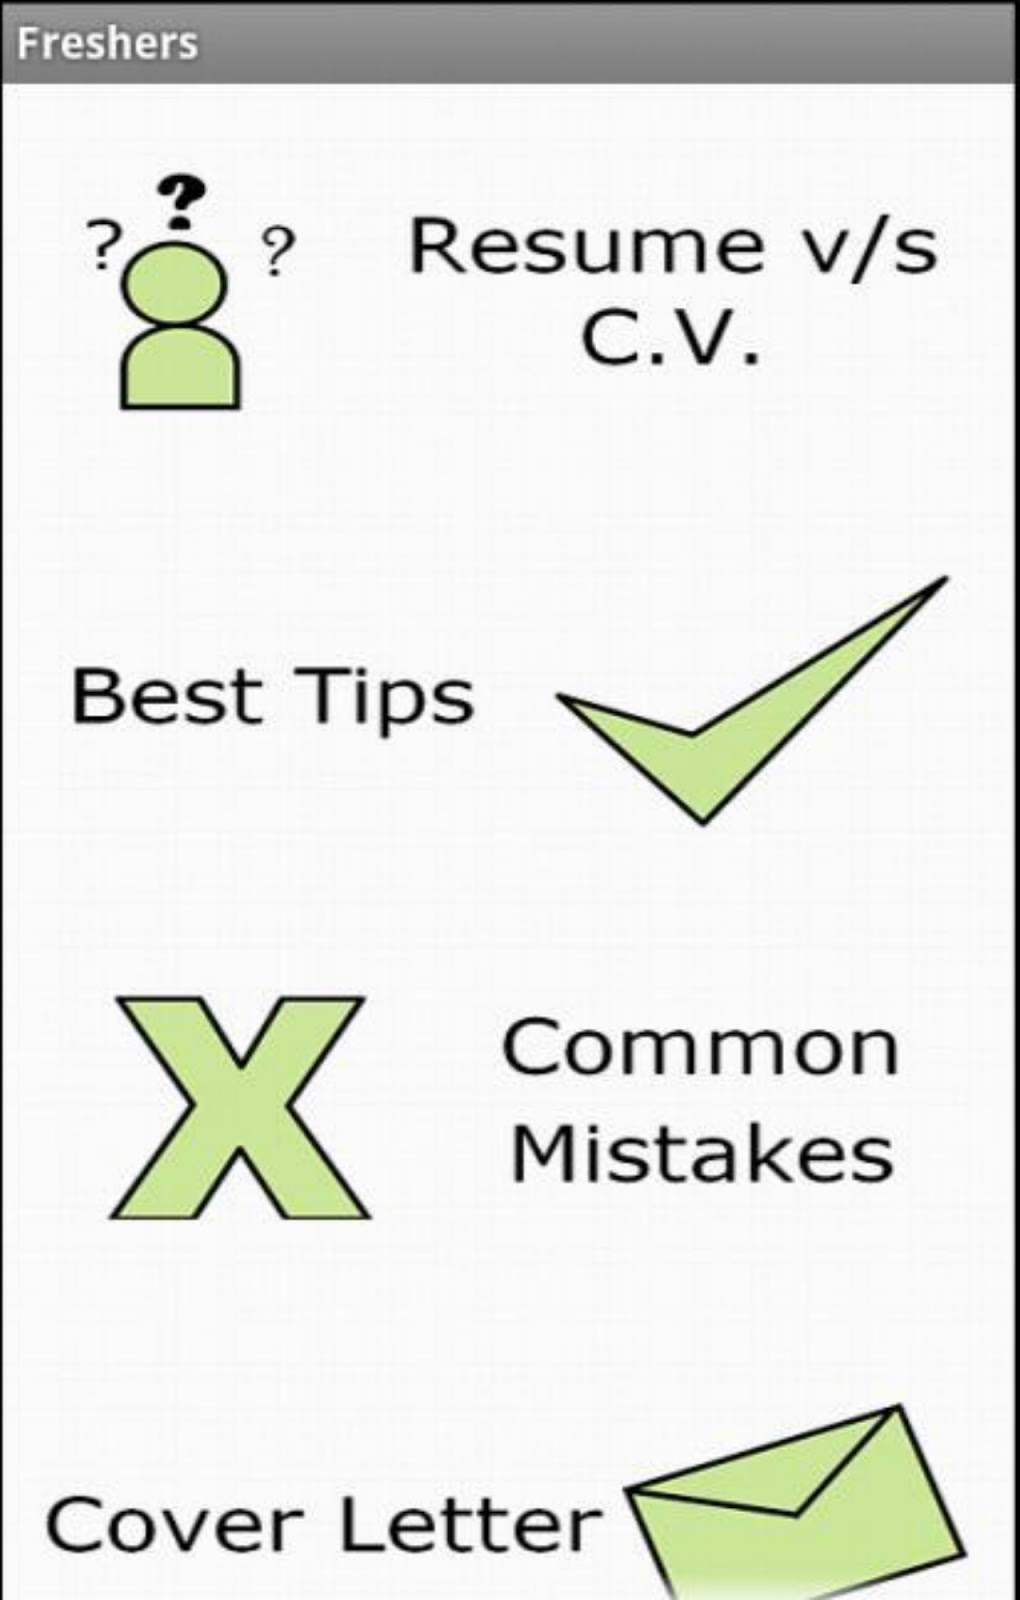 b n apps interview and last minute guide resume it consists 4 options ly resume v s c v best tips common mistakes and cover letter